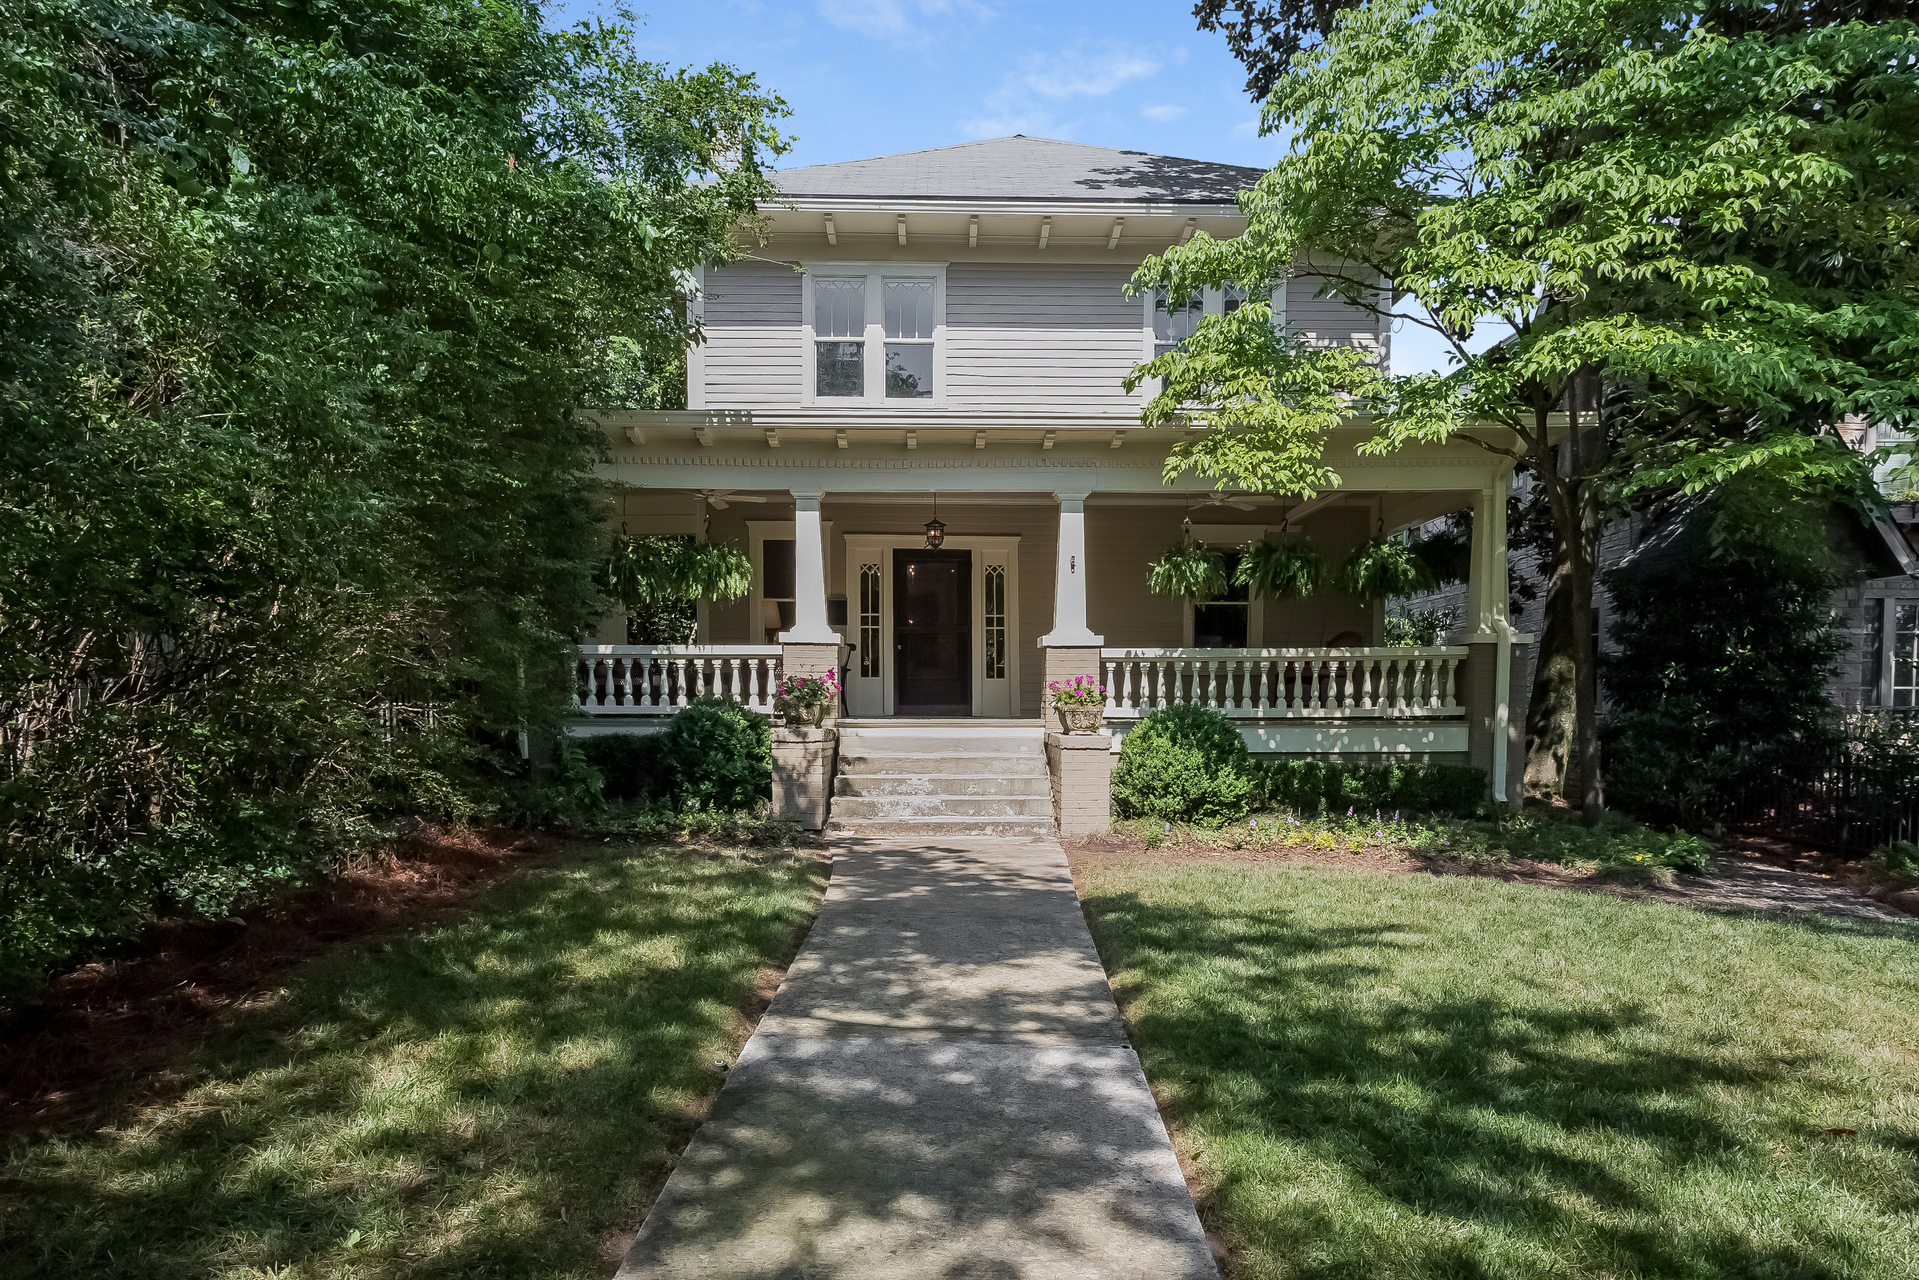 一戸建て のために 売買 アット Classic Craftsman Steps from Virginia Highland Village 932 N Highland Avenue NE Virginia Highland, Atlanta, ジョージア, 30306 アメリカ合衆国